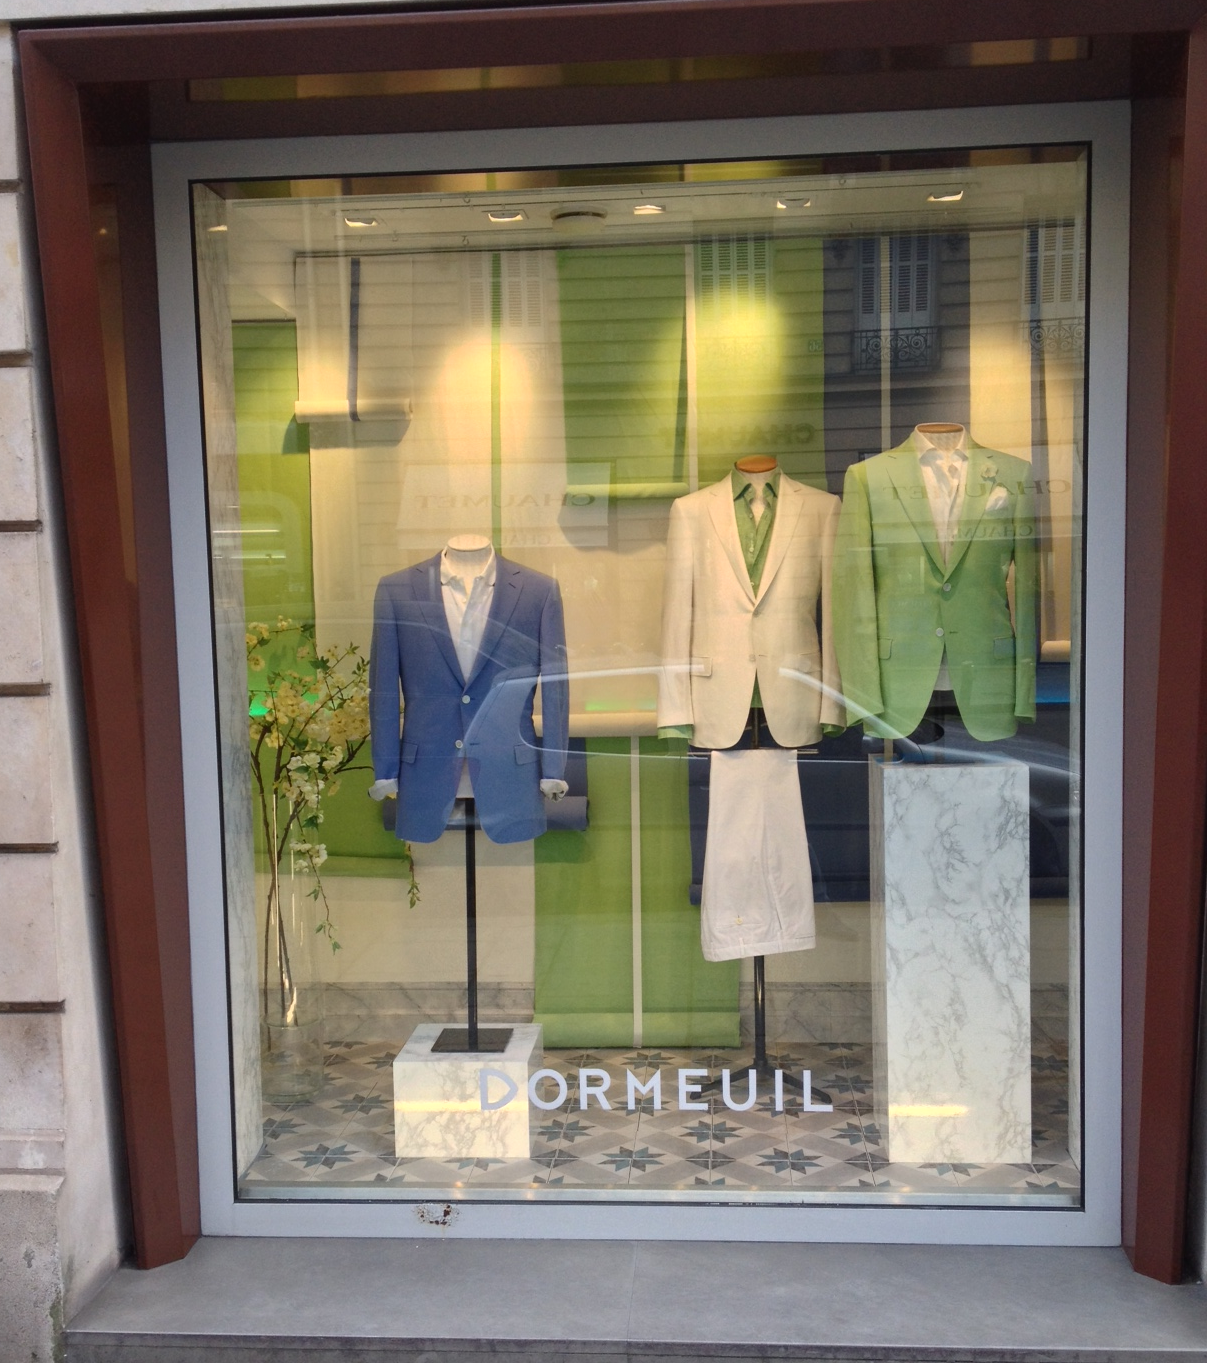 New shop window display in Rue François 1er #dormeuil #dormeuilmode #shopwindow #mensfashion #fashion #collection #spring #happymay #paris